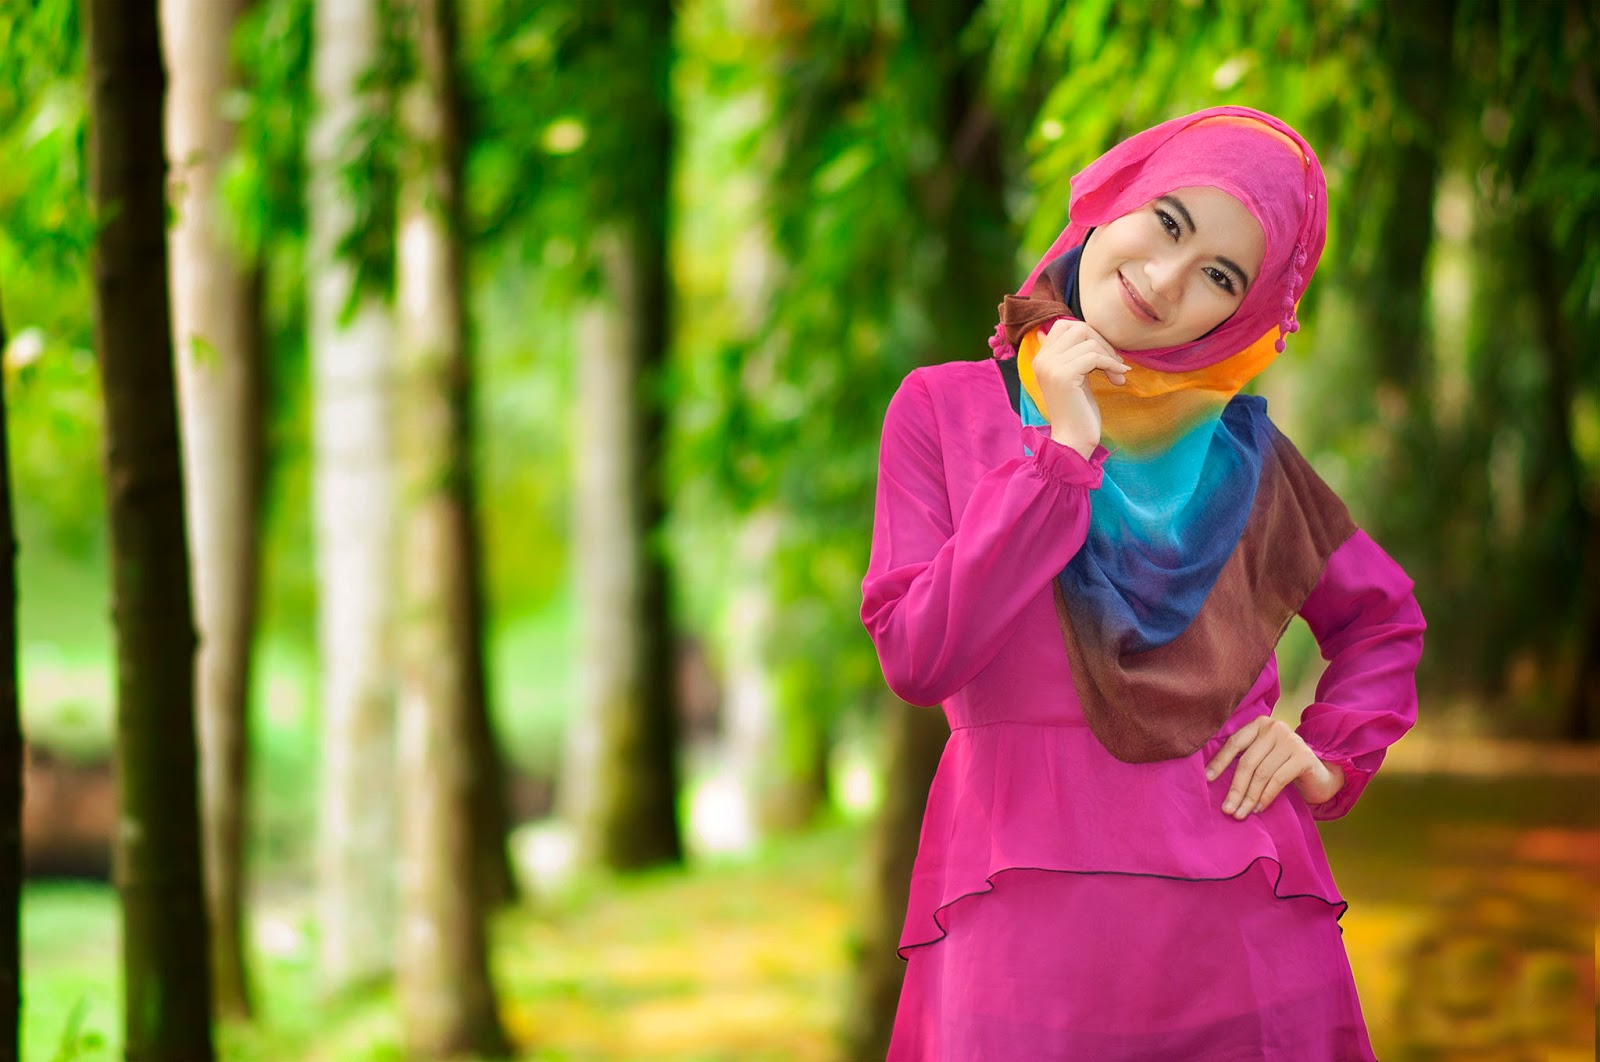 indoor manis cewek Hijab Foto Outdoor full color